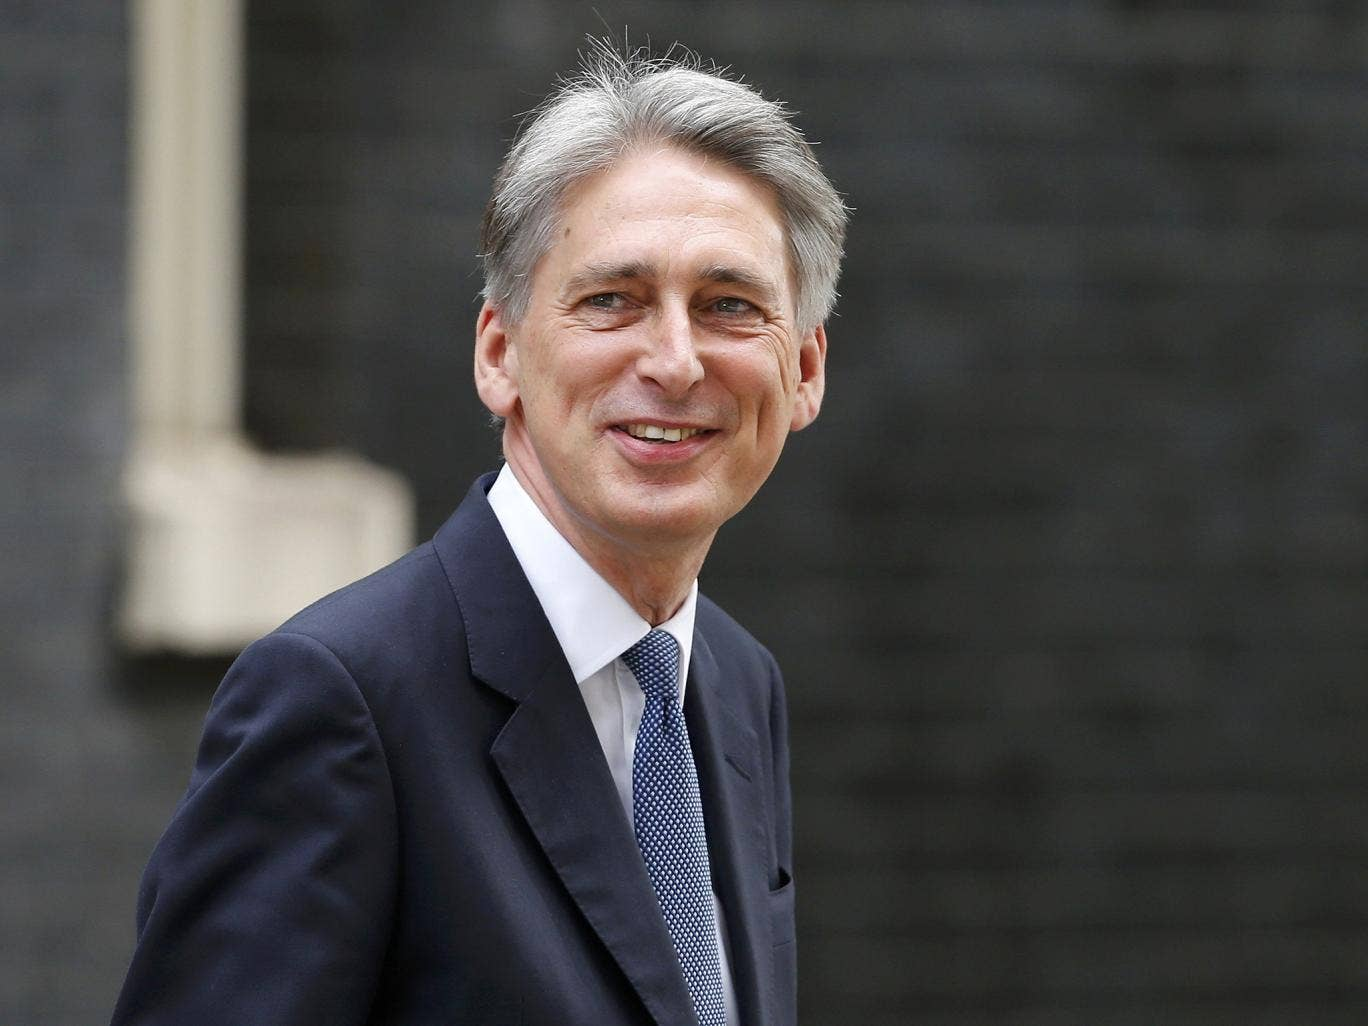 Philip Hammond, Foreign Secretary, has said he would vote to leave the EU unless powers are returned to UK